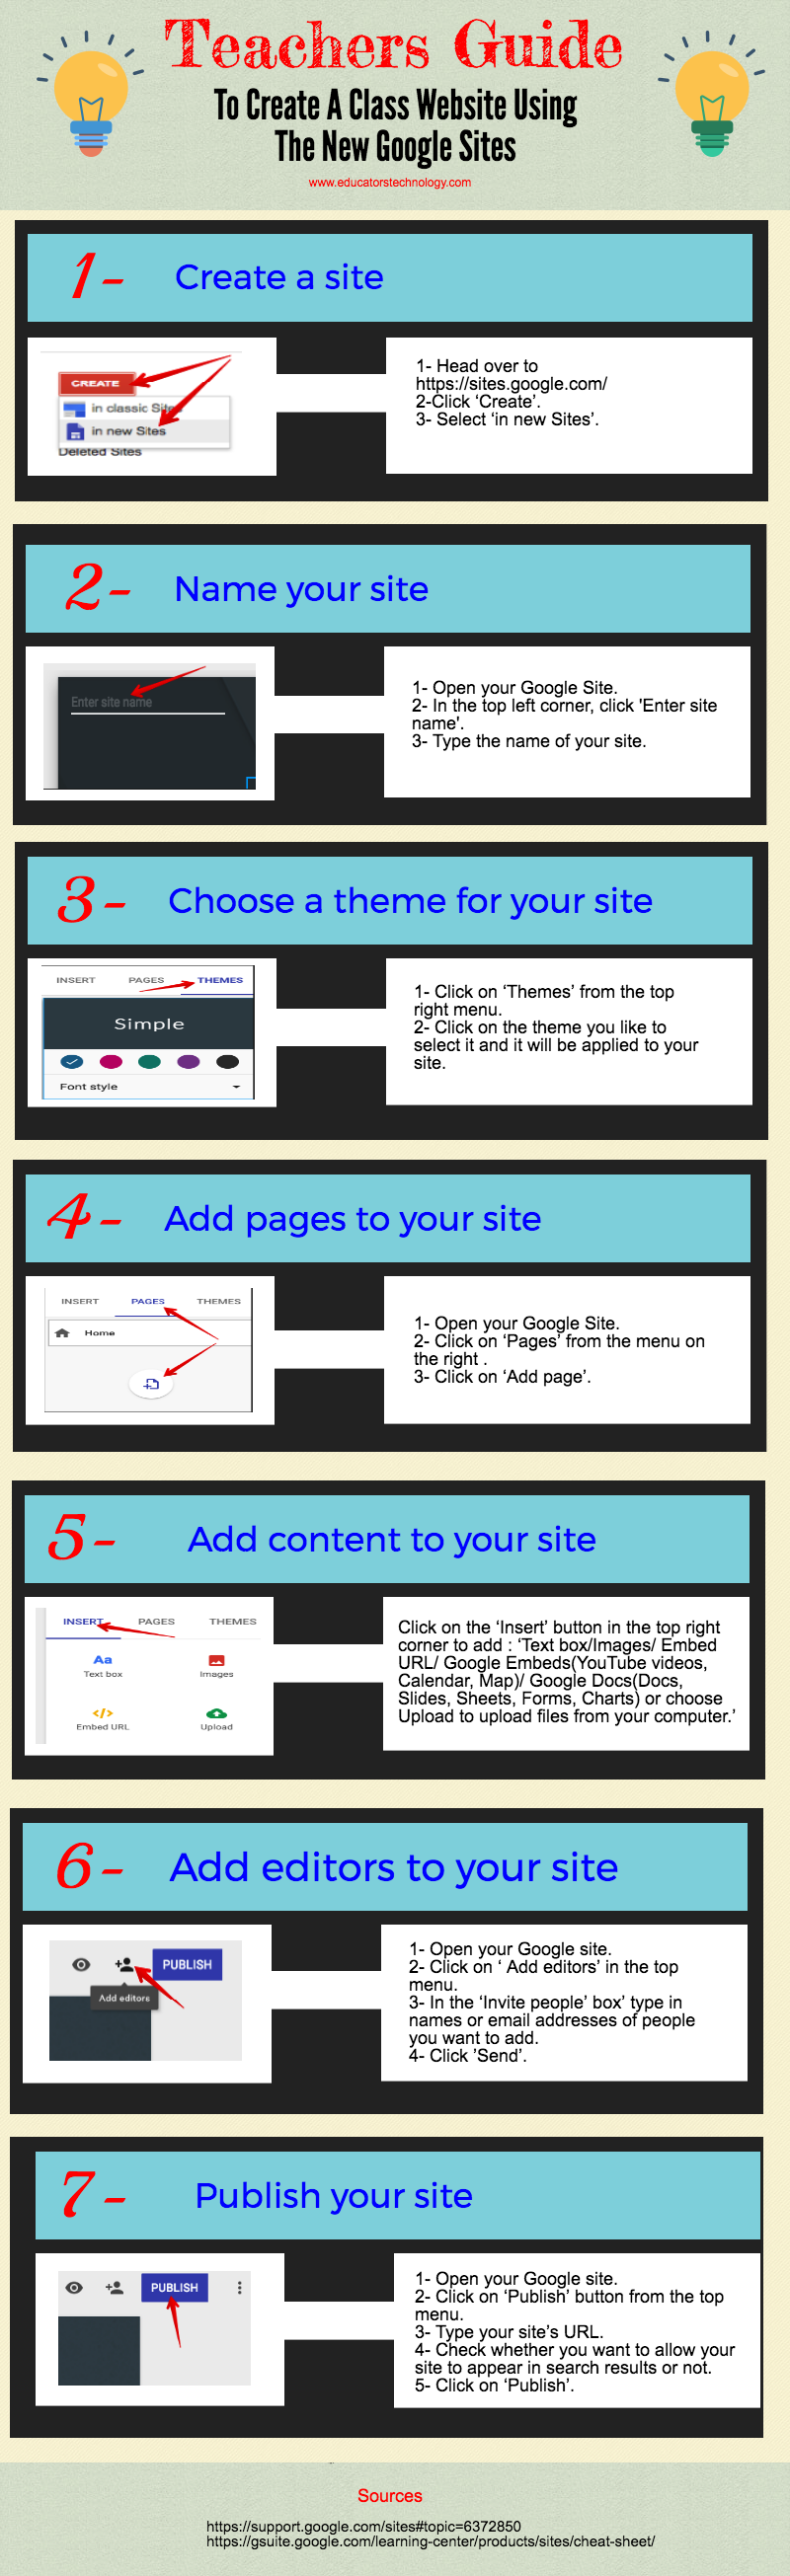 This Is How to Create A Website for Your Class Using Google Sites